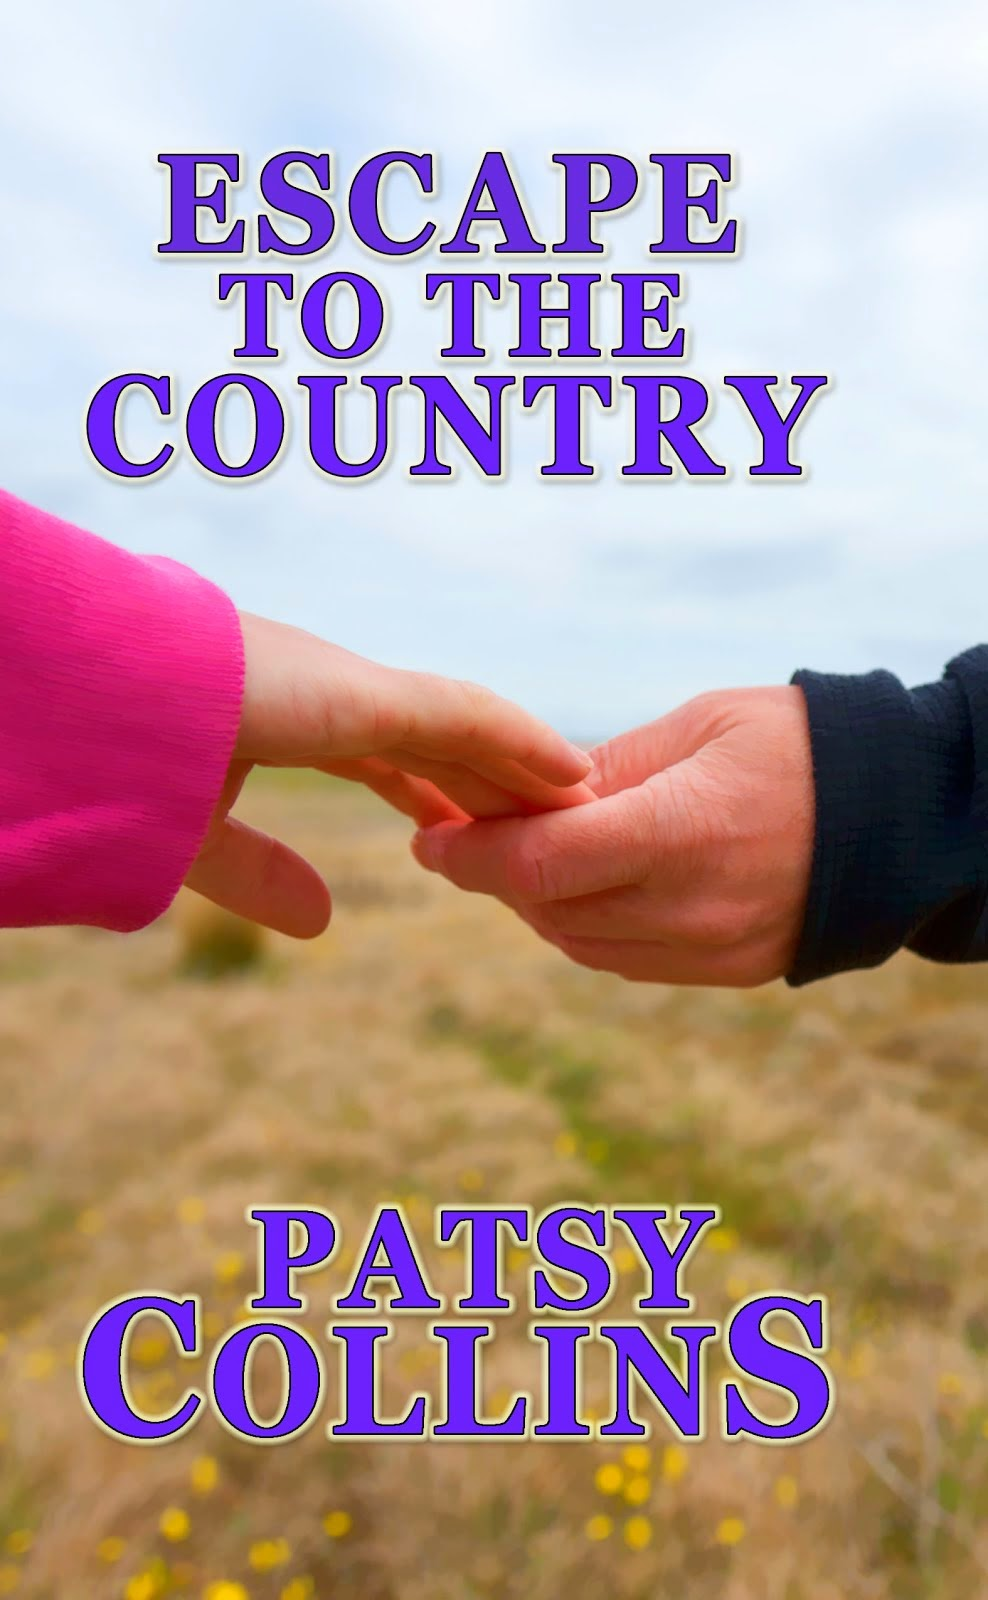 Escape to the Country (2nd Edition)